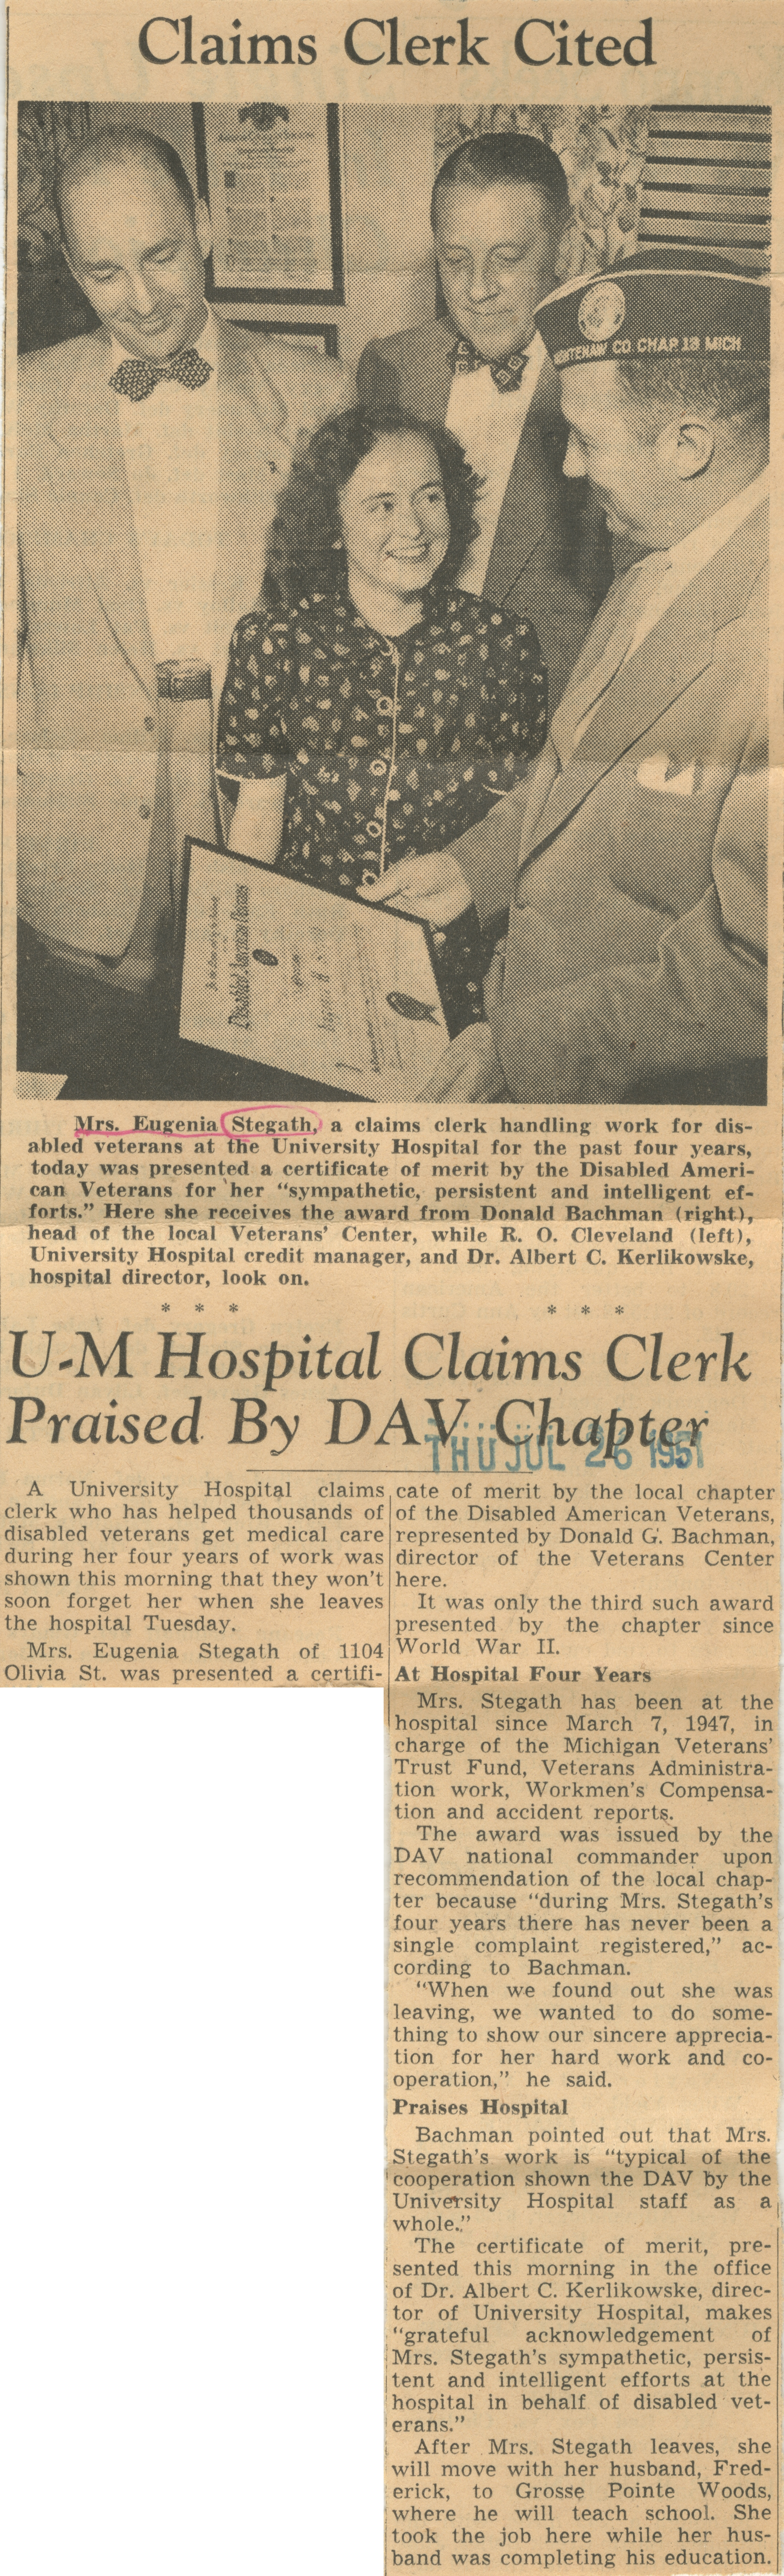 U-M Hospital Claims Clerk Praised By DAV Chapter image